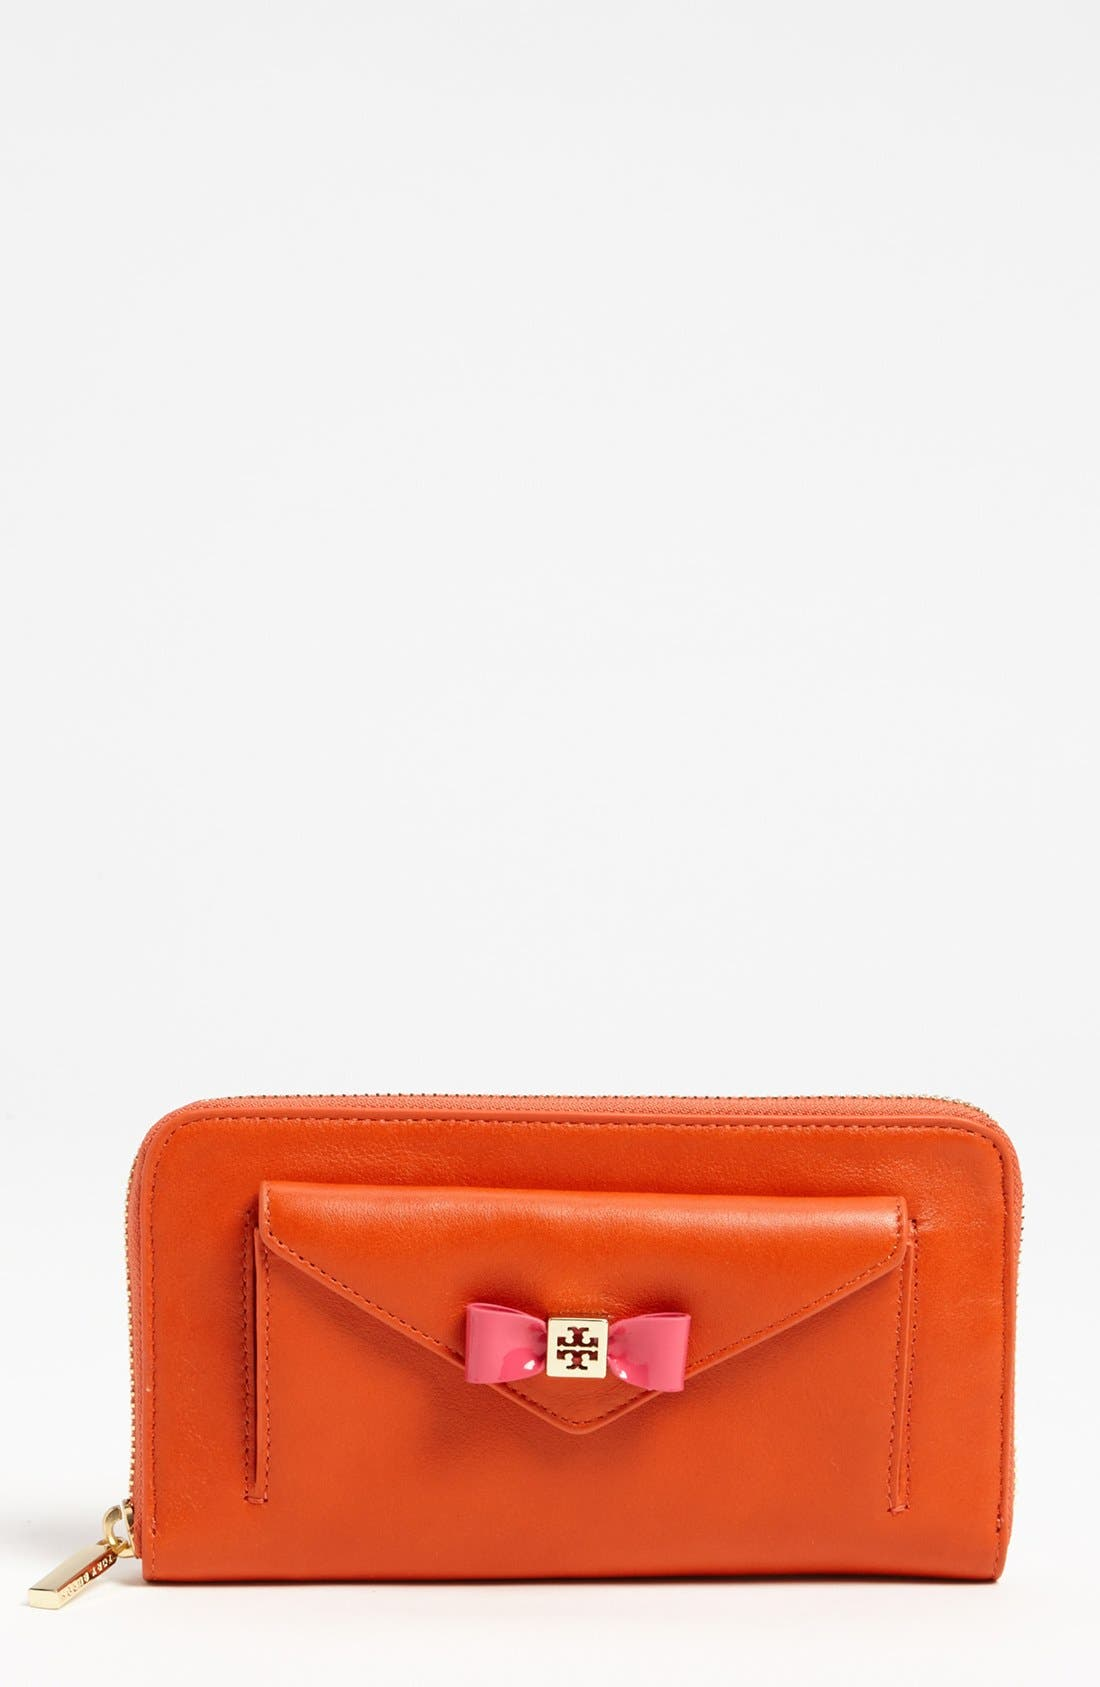 Main Image - Tory Burch 'Bow' Leather Zip Wallet